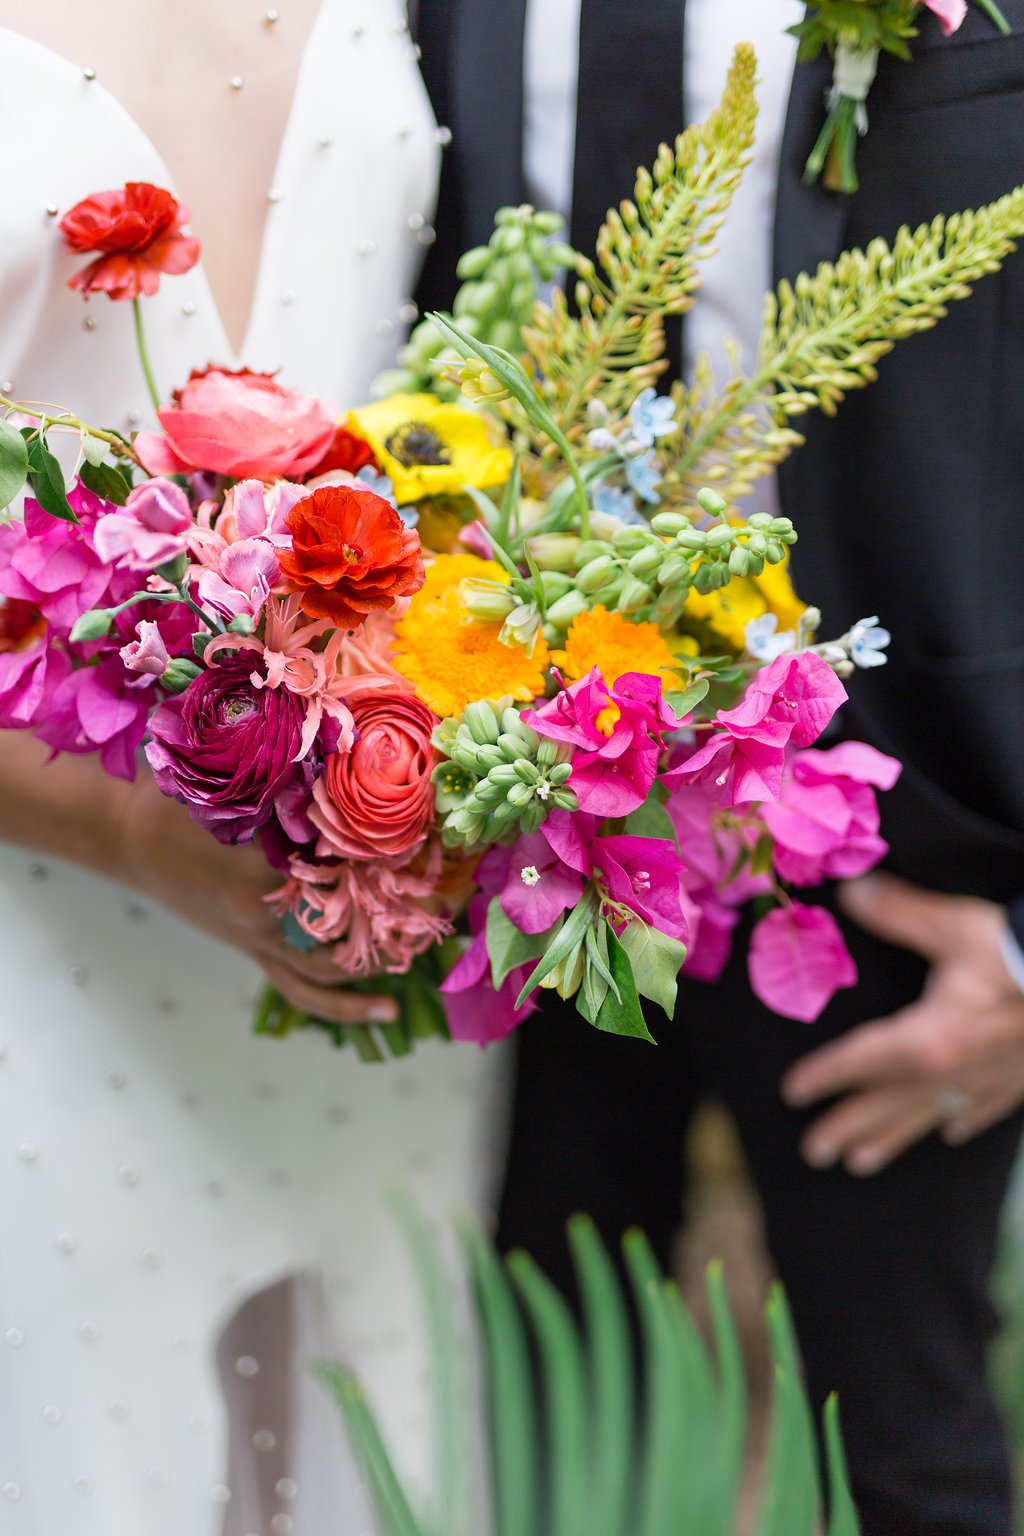 Smithhouse Photo / Bricolage Curated Florals